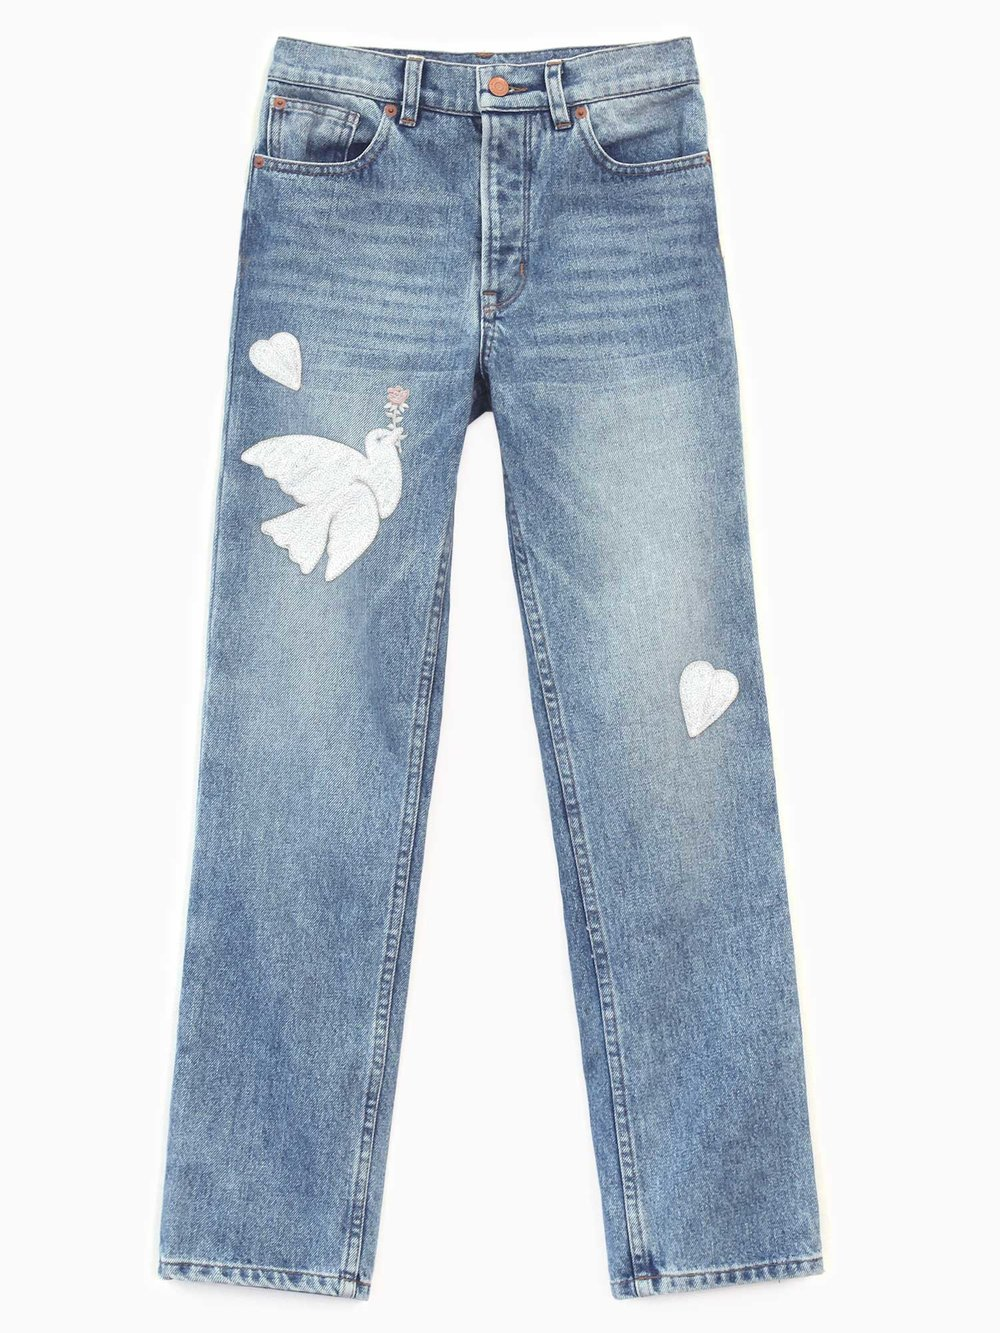 Peace Dove Denim in Medium Wash.jpg